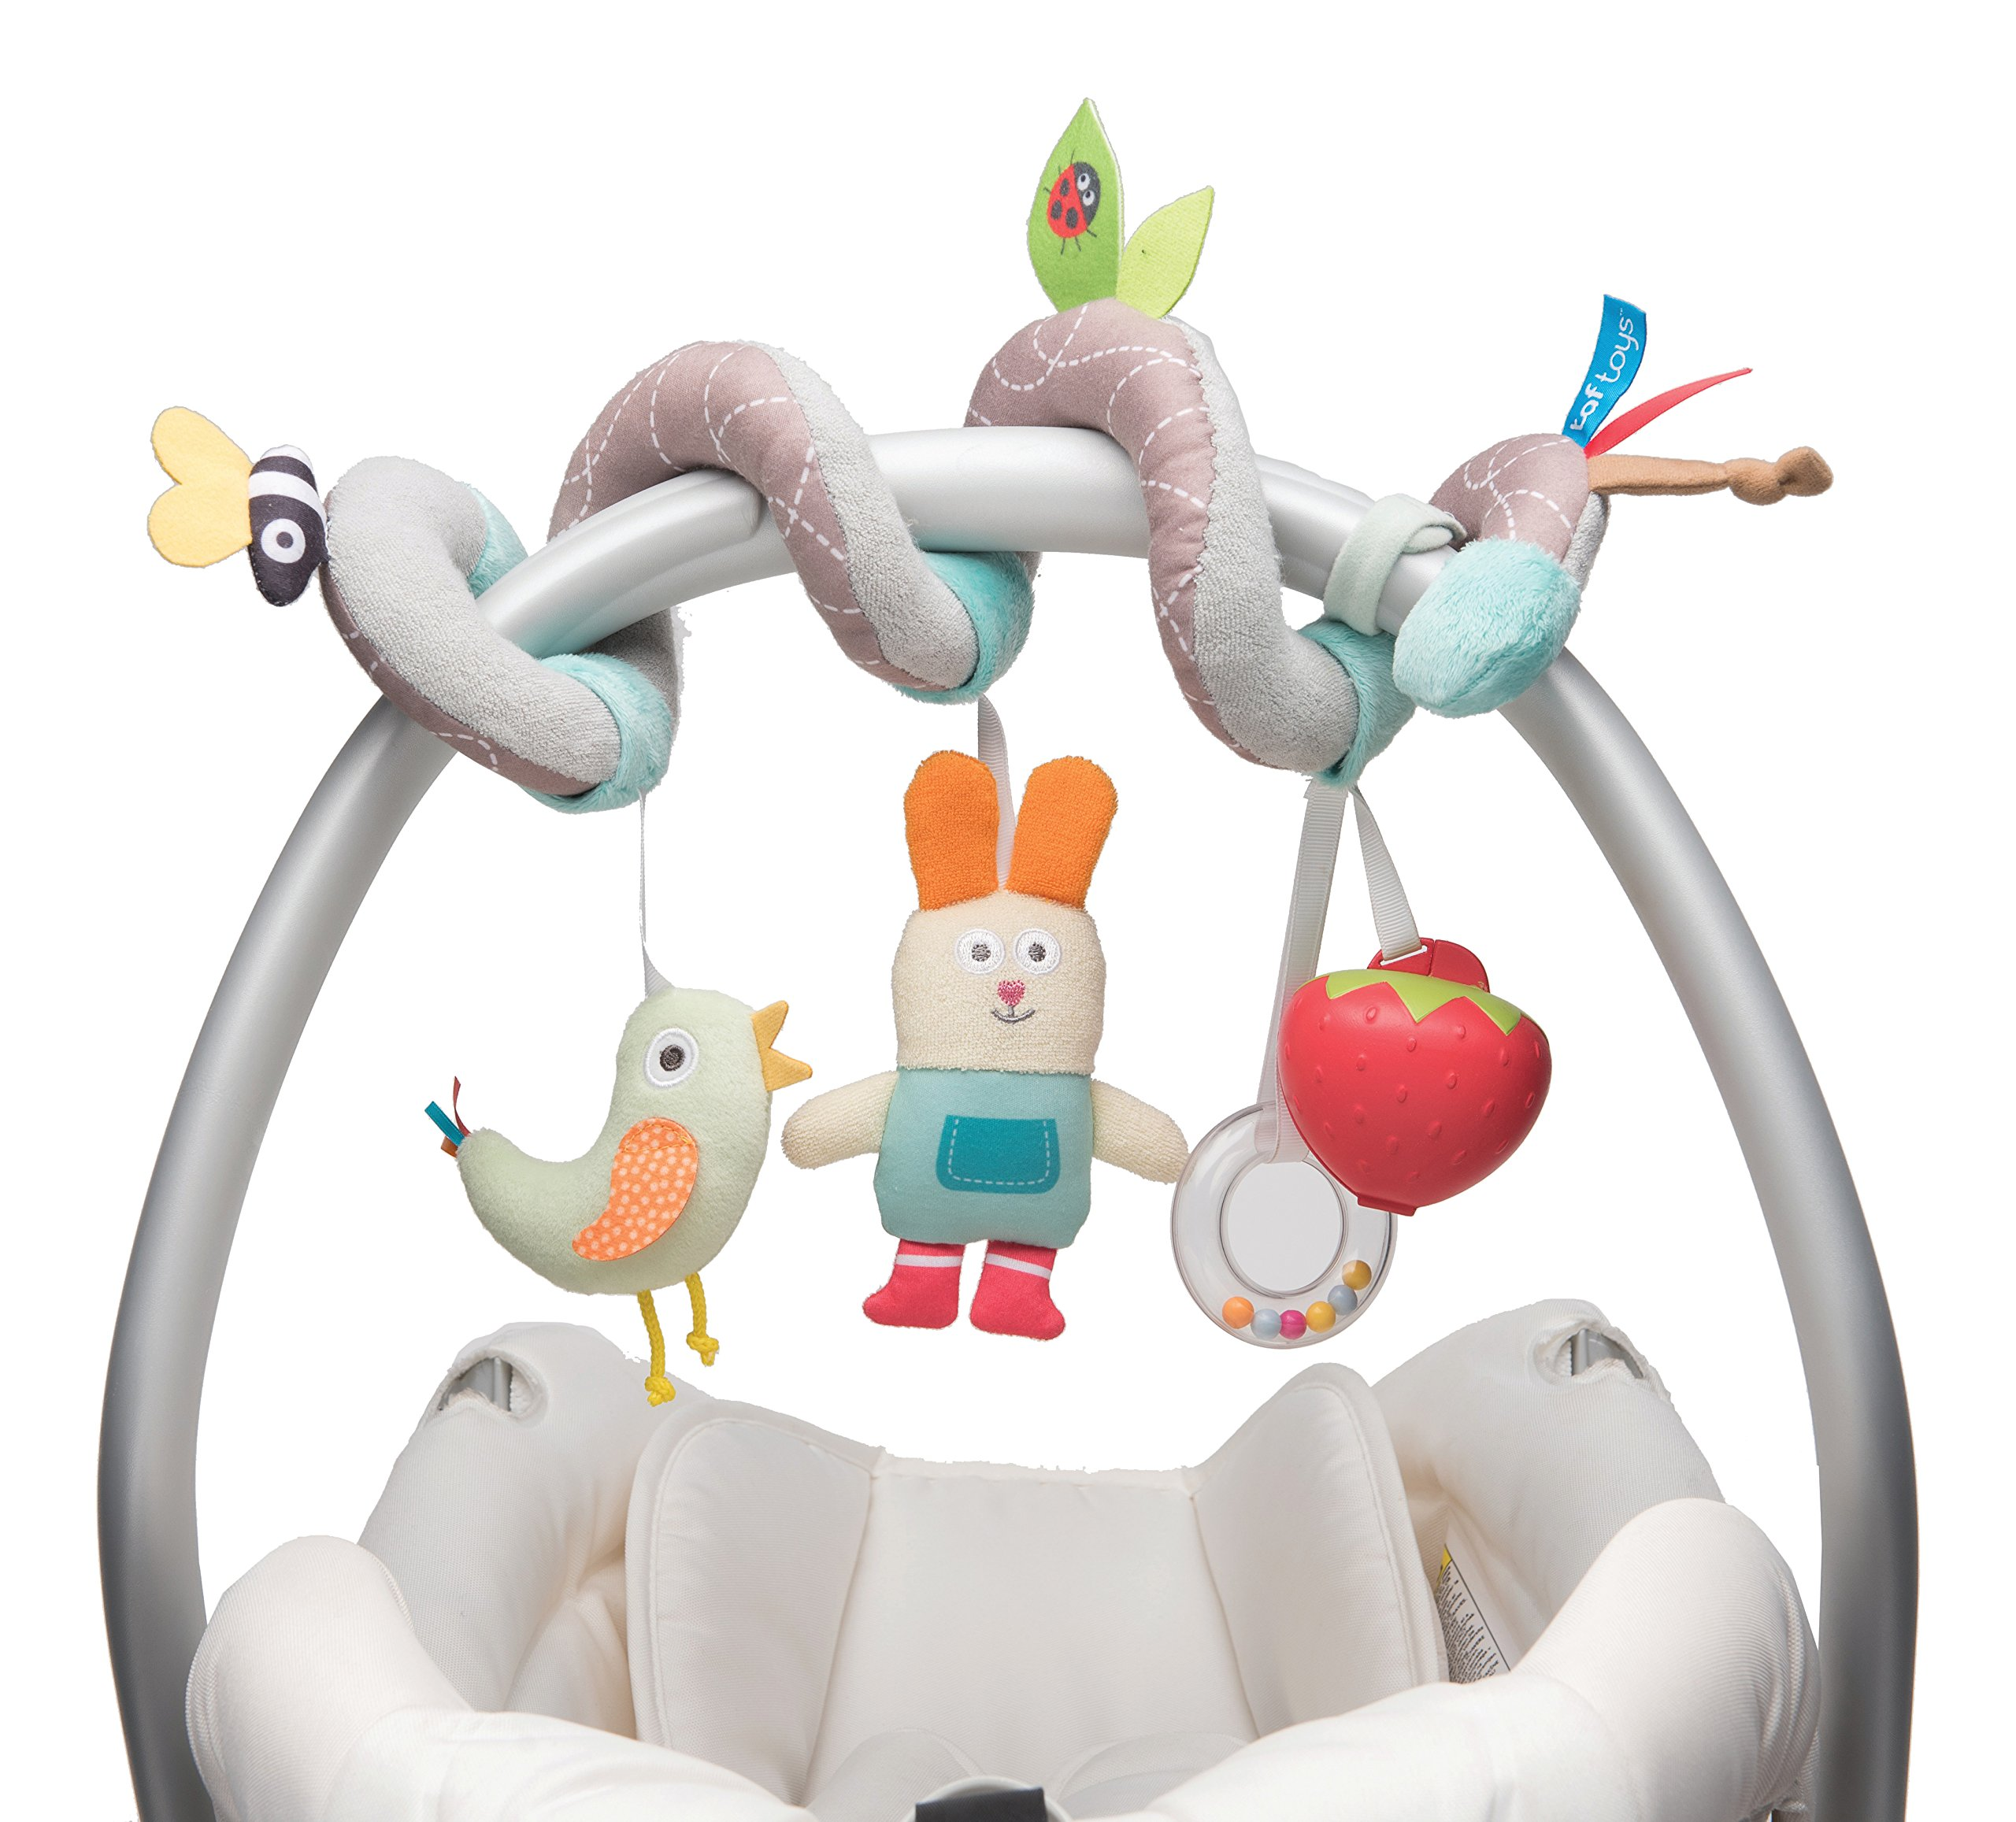 Taf Toys Garden Spiral | Baby's Fun Accessory for Car Seat & Pram Etc, Hanging Rattling Toys, Easier Parenting, Keeps Your Baby Happy, Ideal Gift, Soother Strawberry Shape Case, for Easier Outdoors